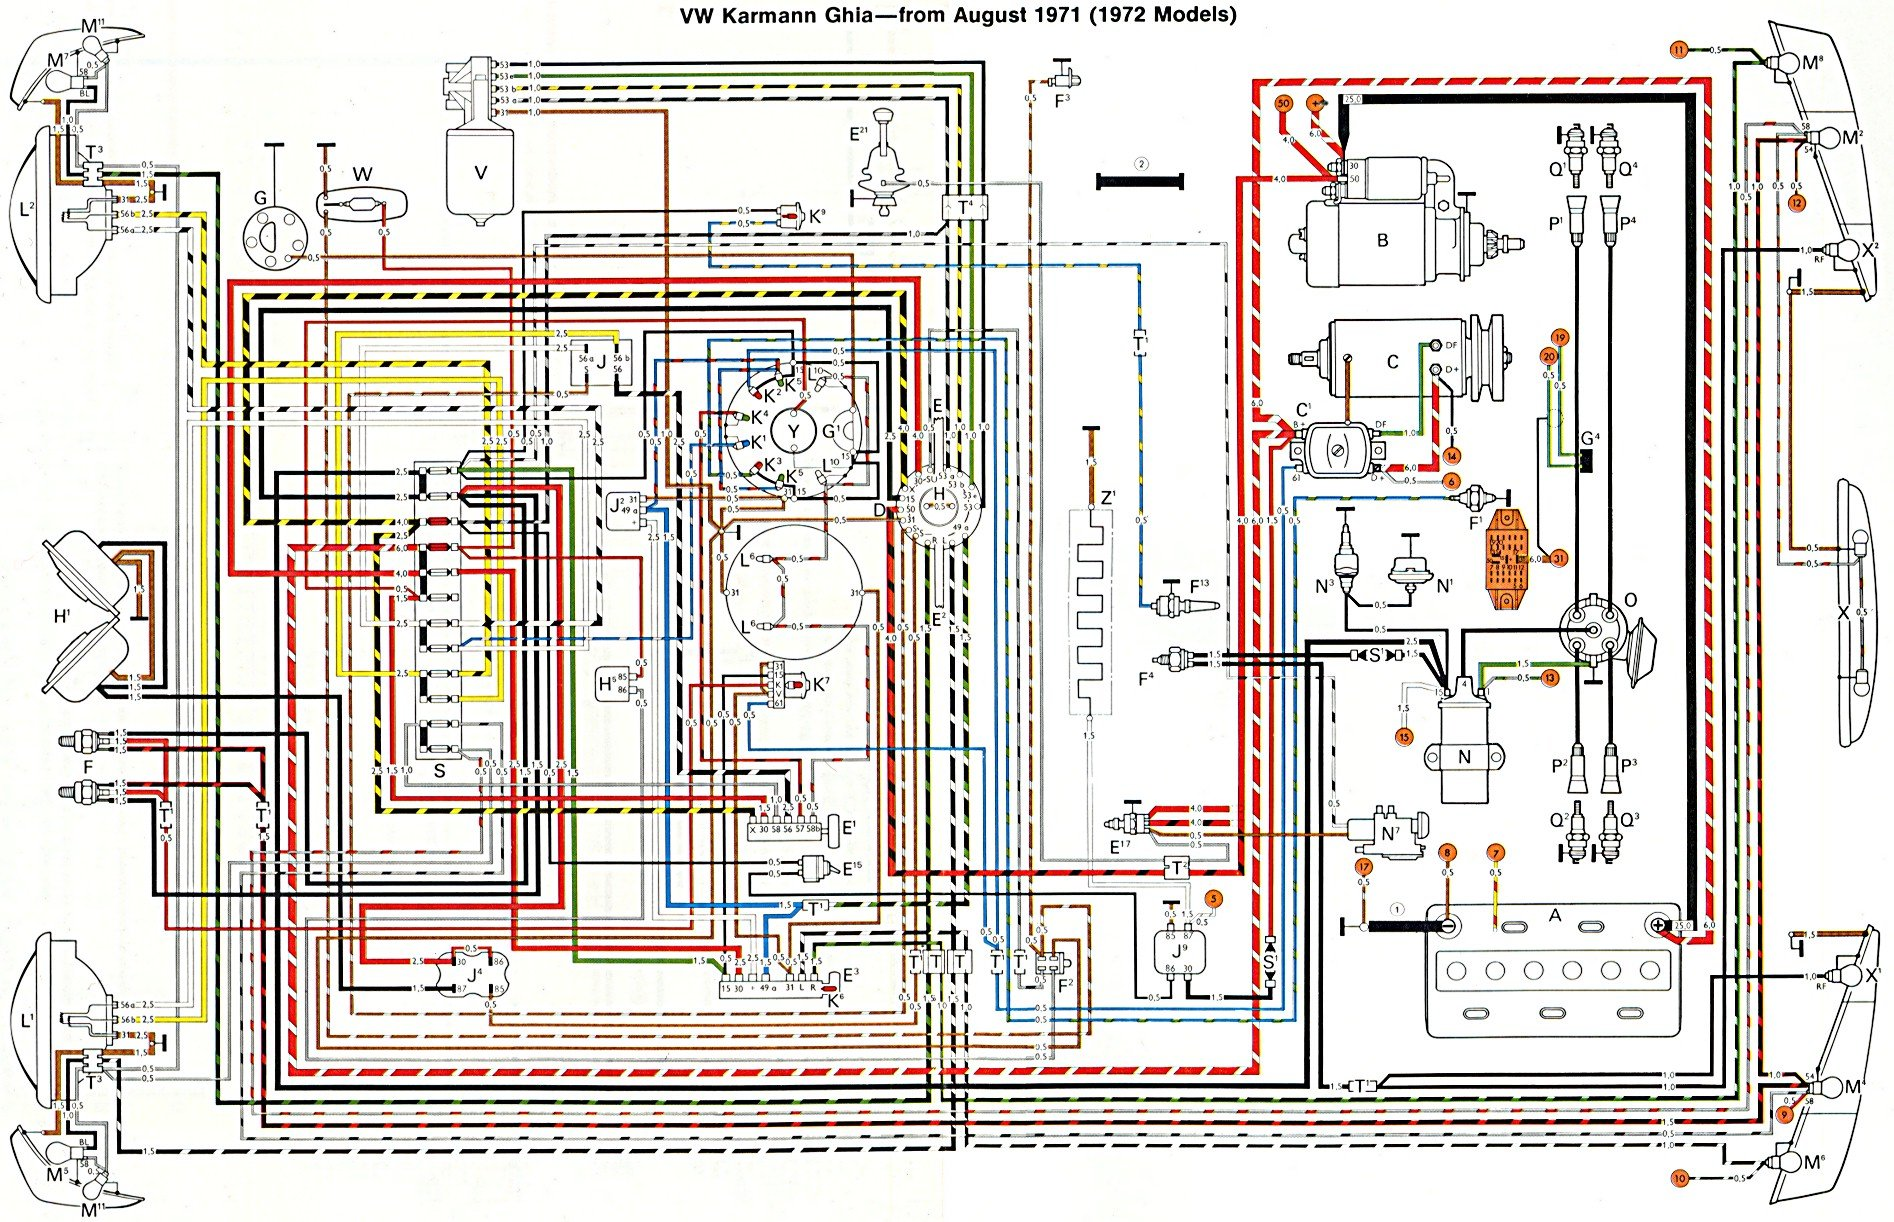 72ghia 72 vw beetle wiring diagram 2001 vw alternator wire diagram \u2022 free 1975 porsche 911 wiring diagram at creativeand.co